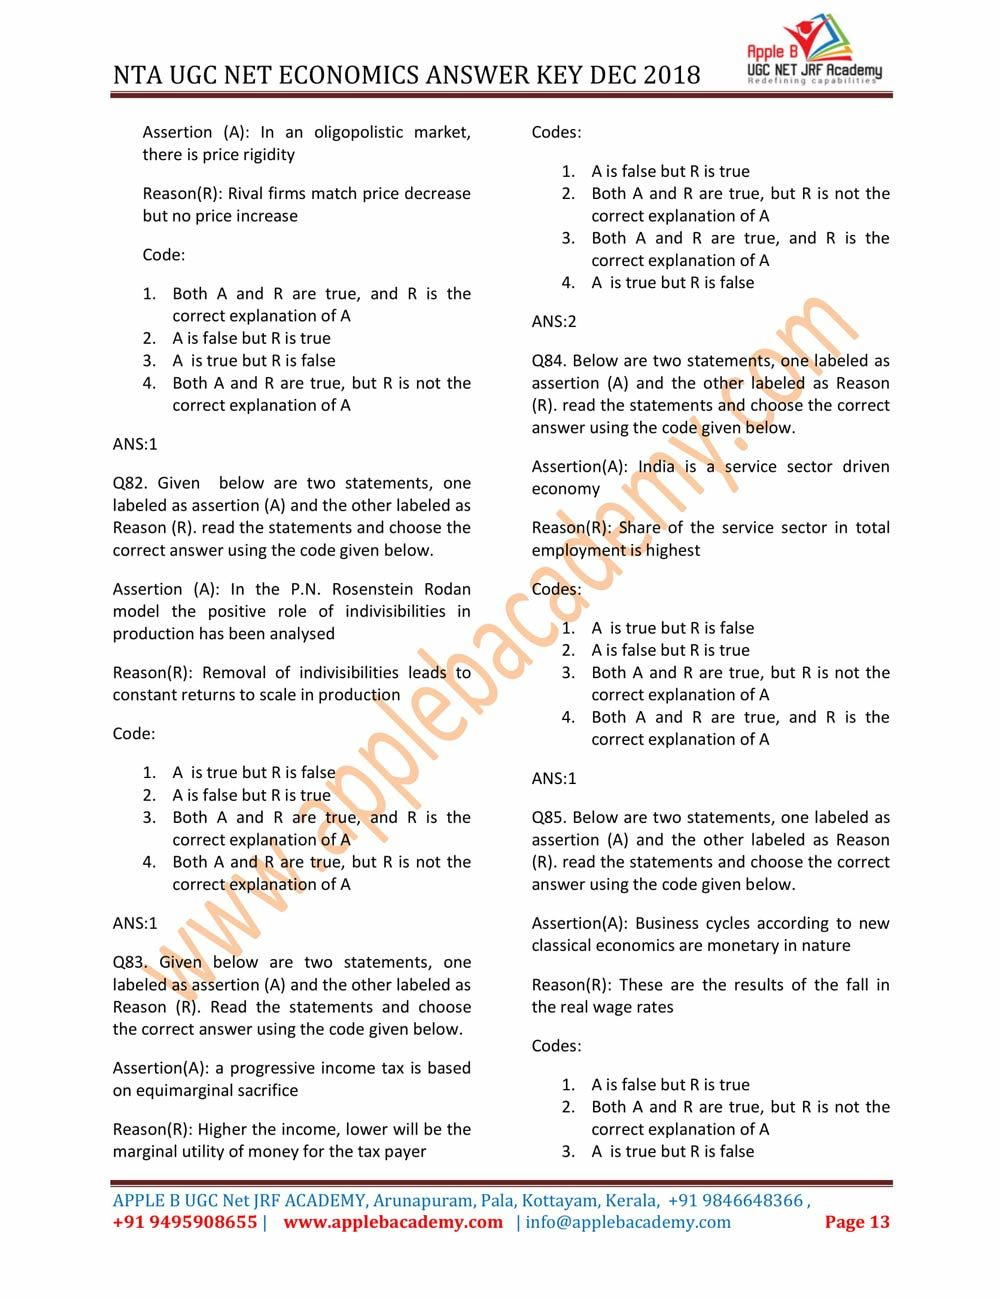 UGC-NET-ECONOMICS-ANSWER-KEY-DECEMBER-2018-(13)+